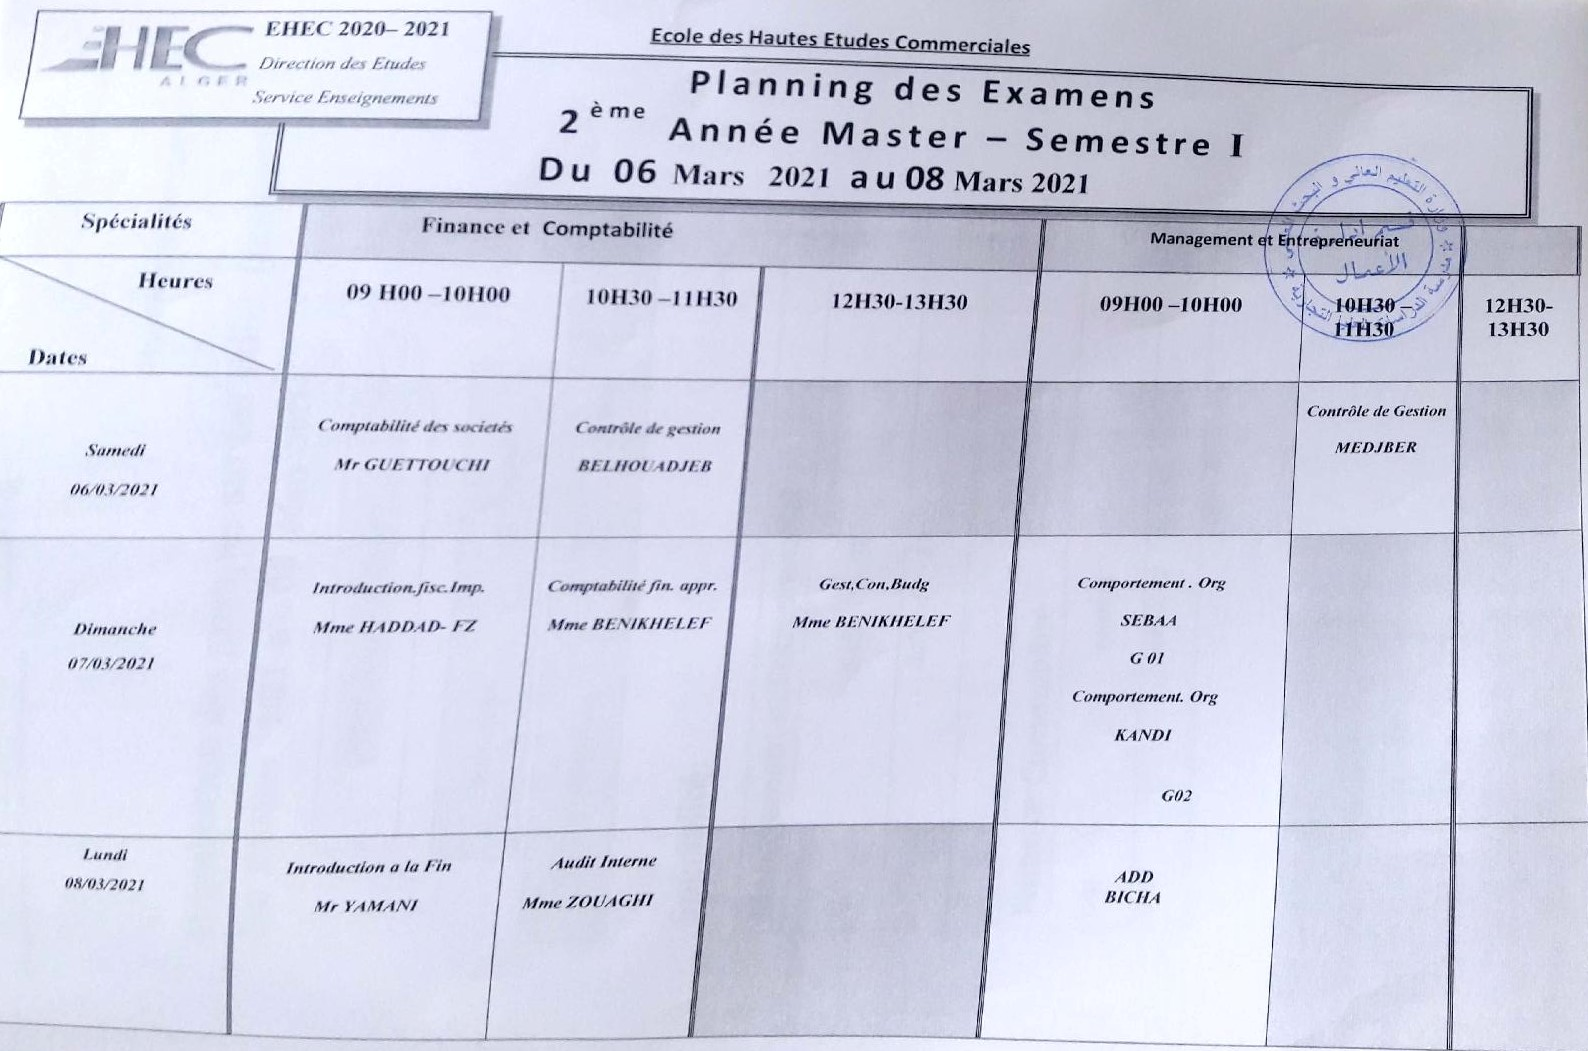 Exam timetable for the 2nd year master cycle students of The department of Management S1